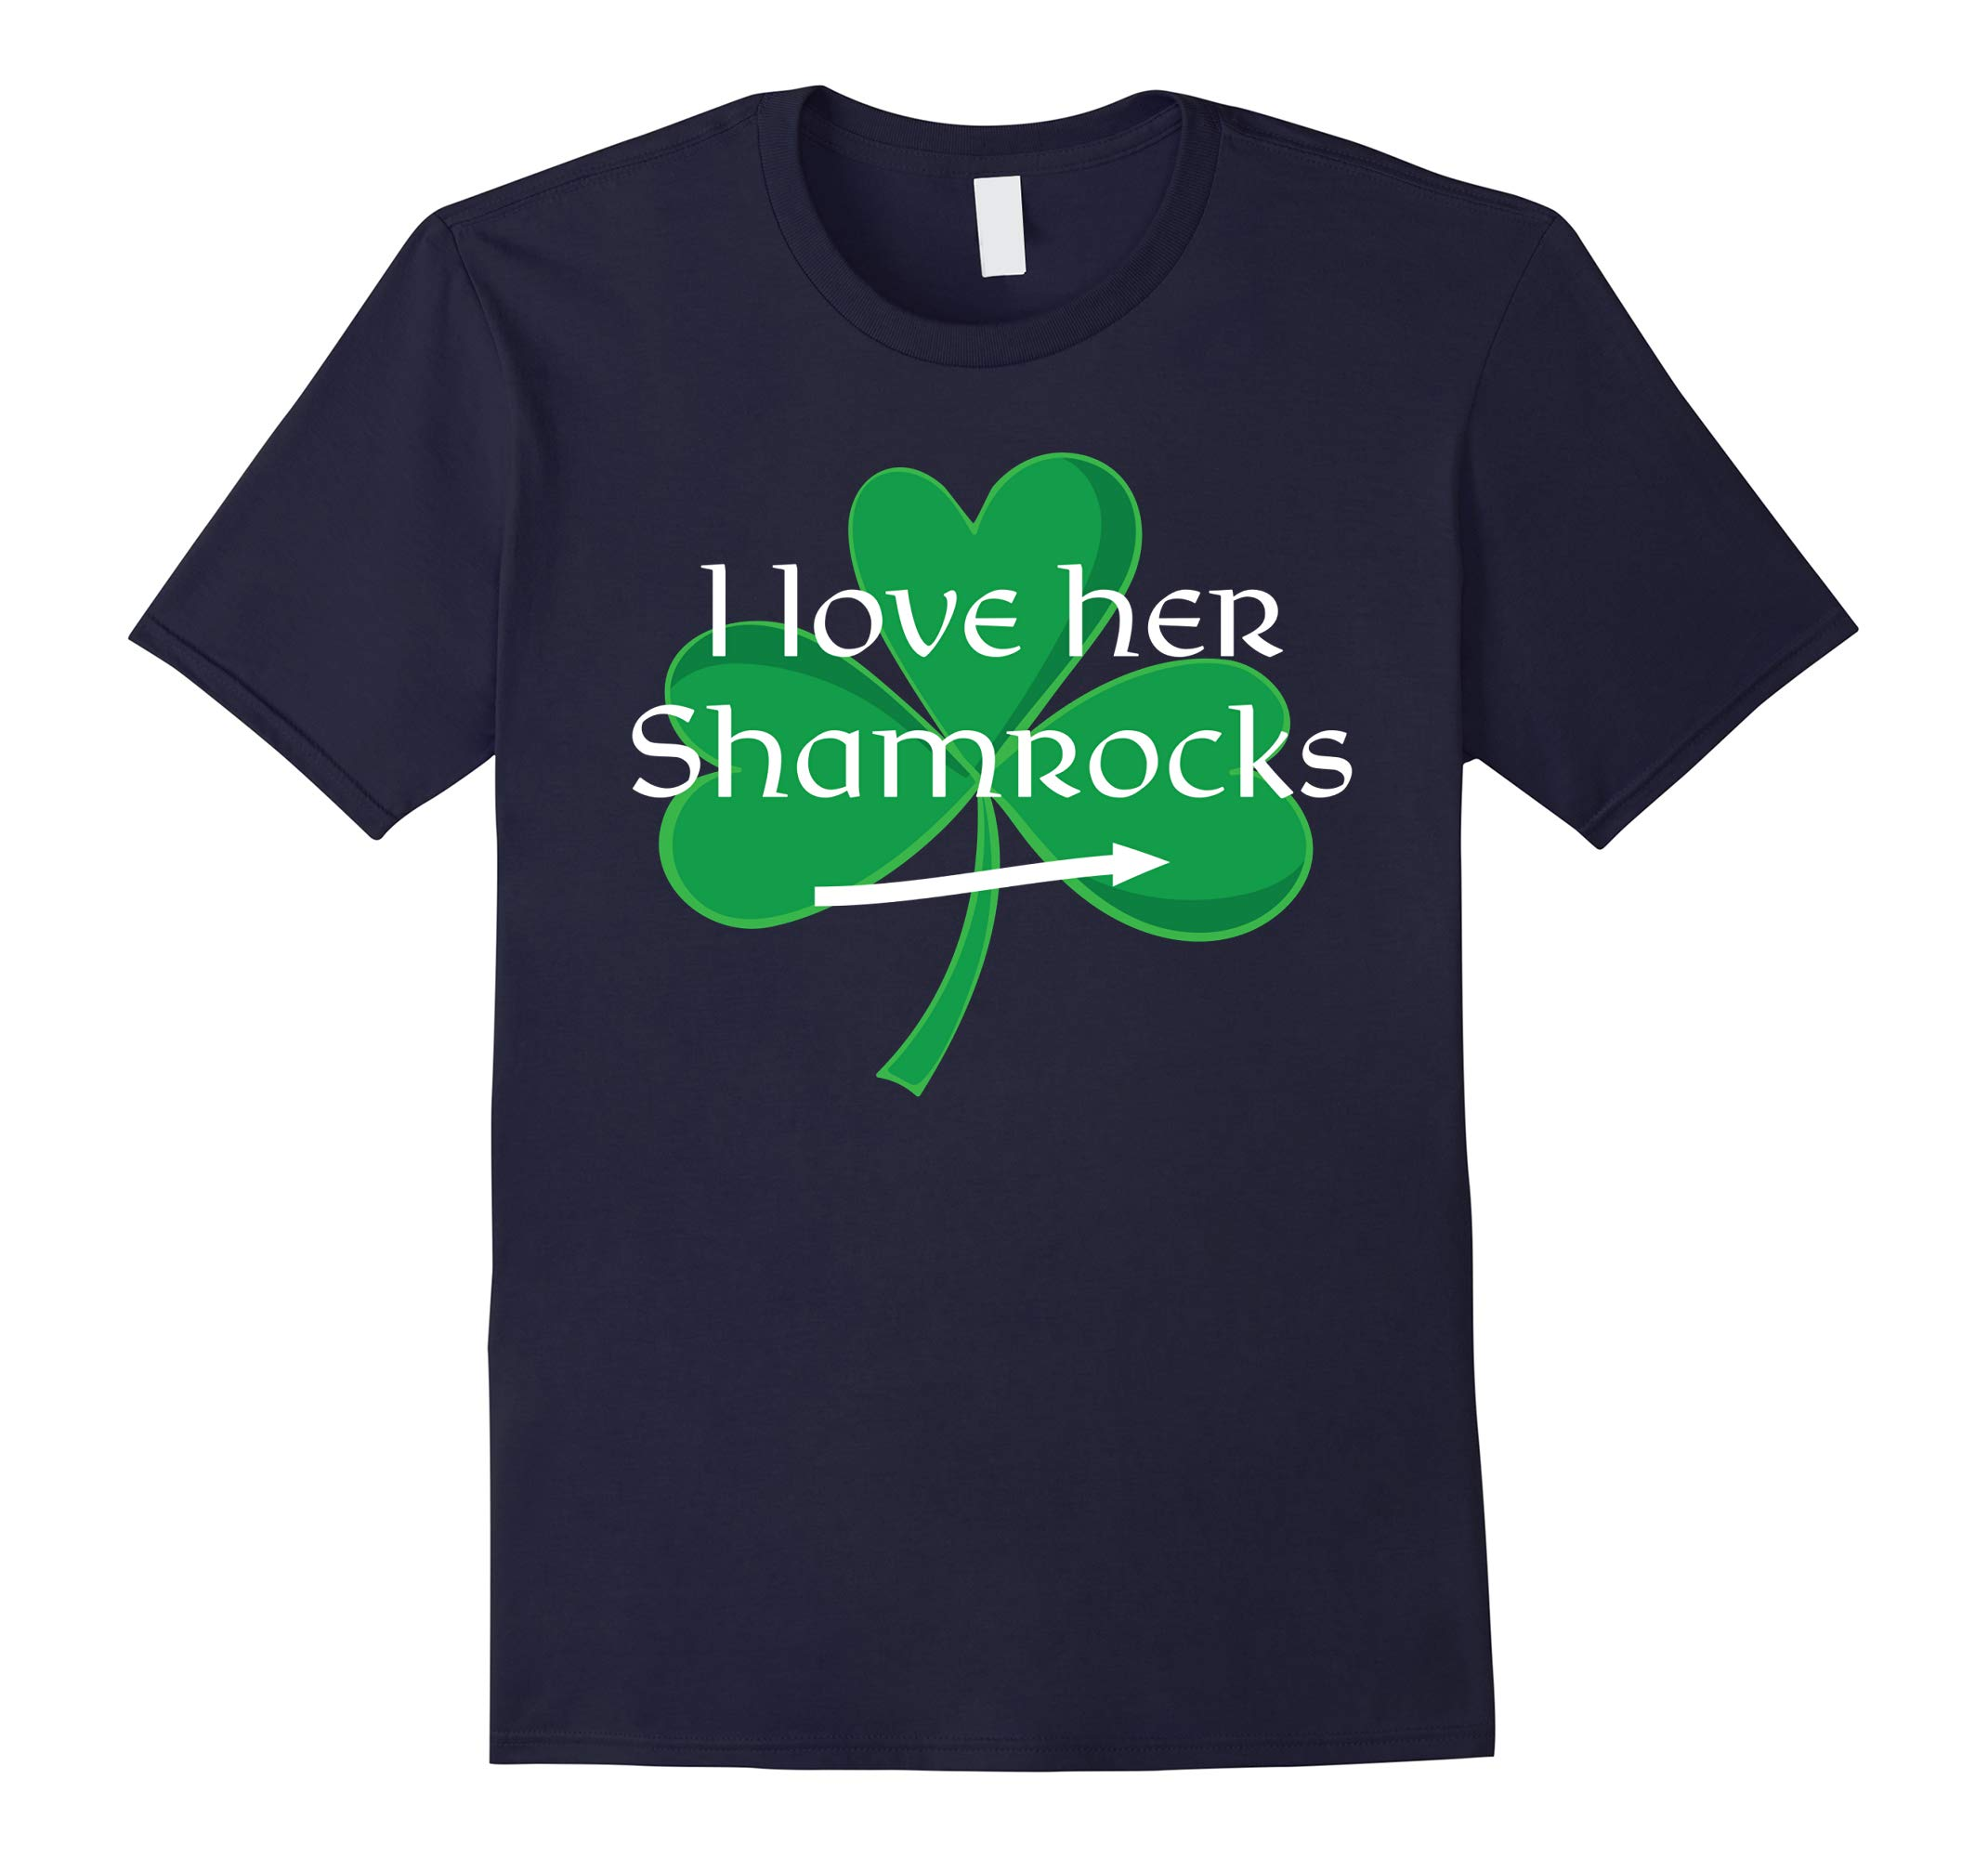 Funny Couples St. Patty's Day T-Shirt I Love Her Shamrocks-RT